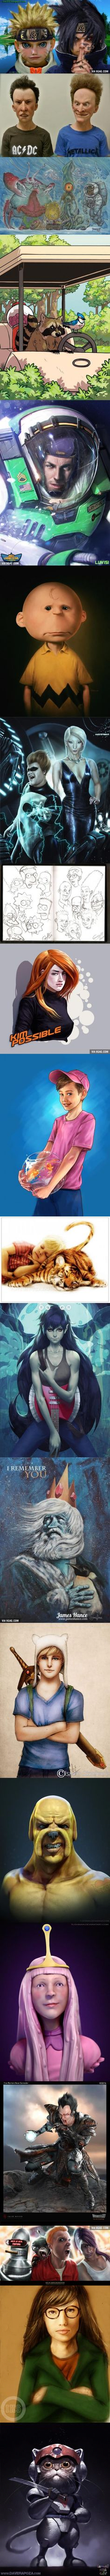 40 Realistic Versions of Cartoon Characters (Part 2)